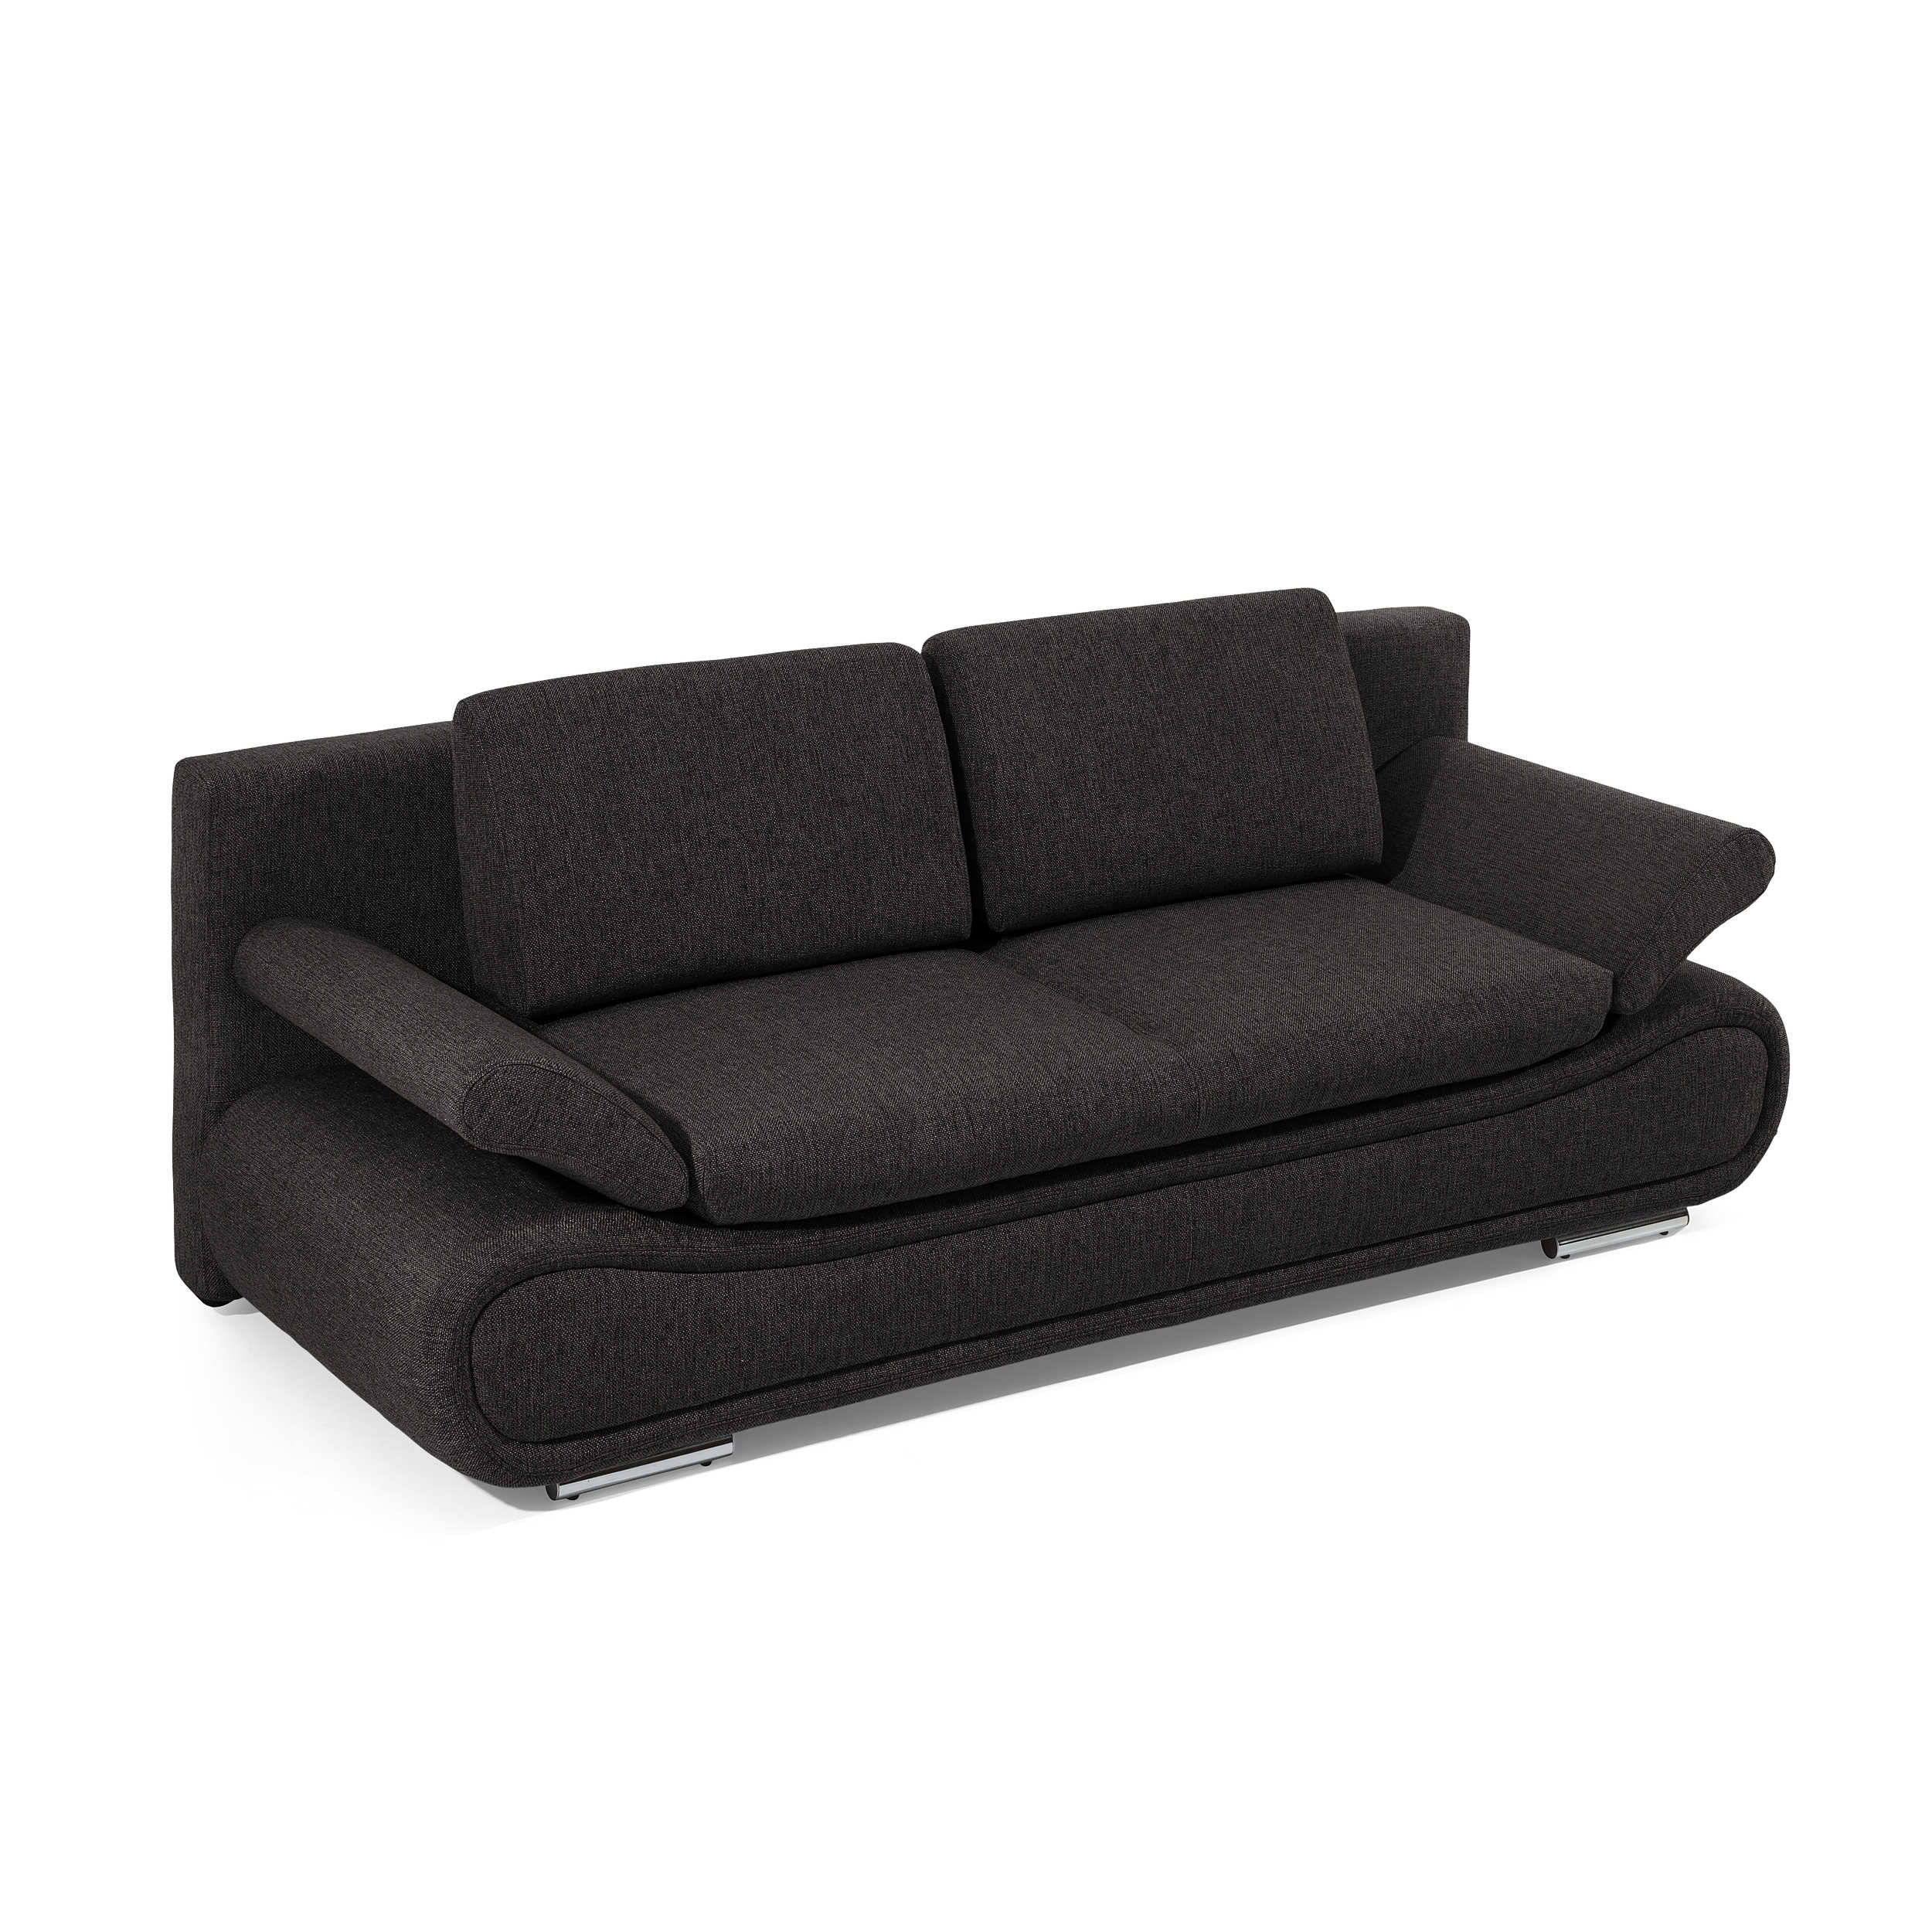 schlafsofa verena schwarz stoff online kaufen. Black Bedroom Furniture Sets. Home Design Ideas